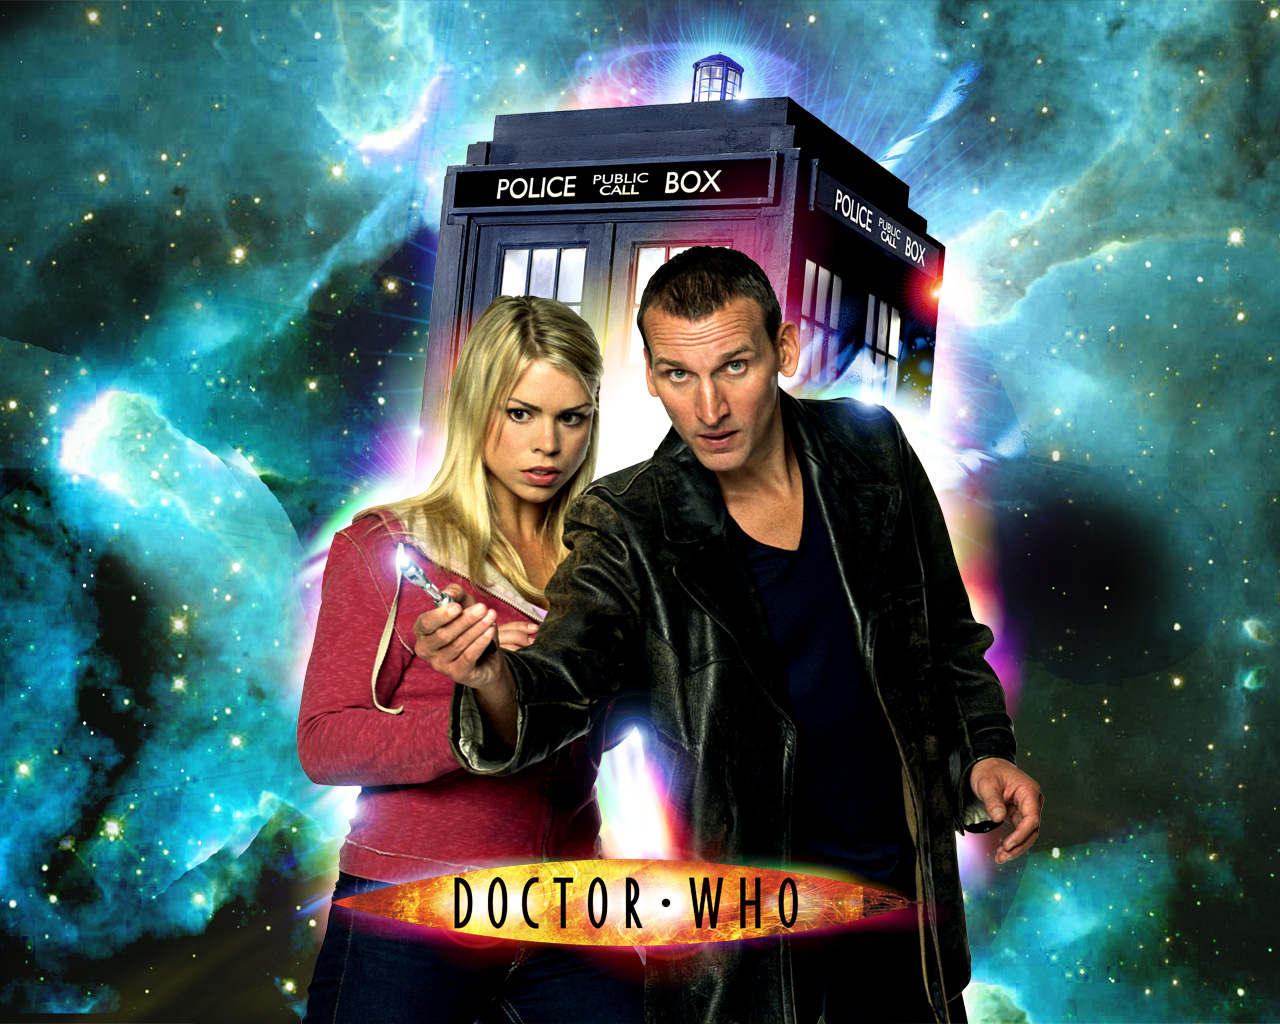 Dr Who Season 1 Series 27 The Trip Of A Lifetime Neogaf